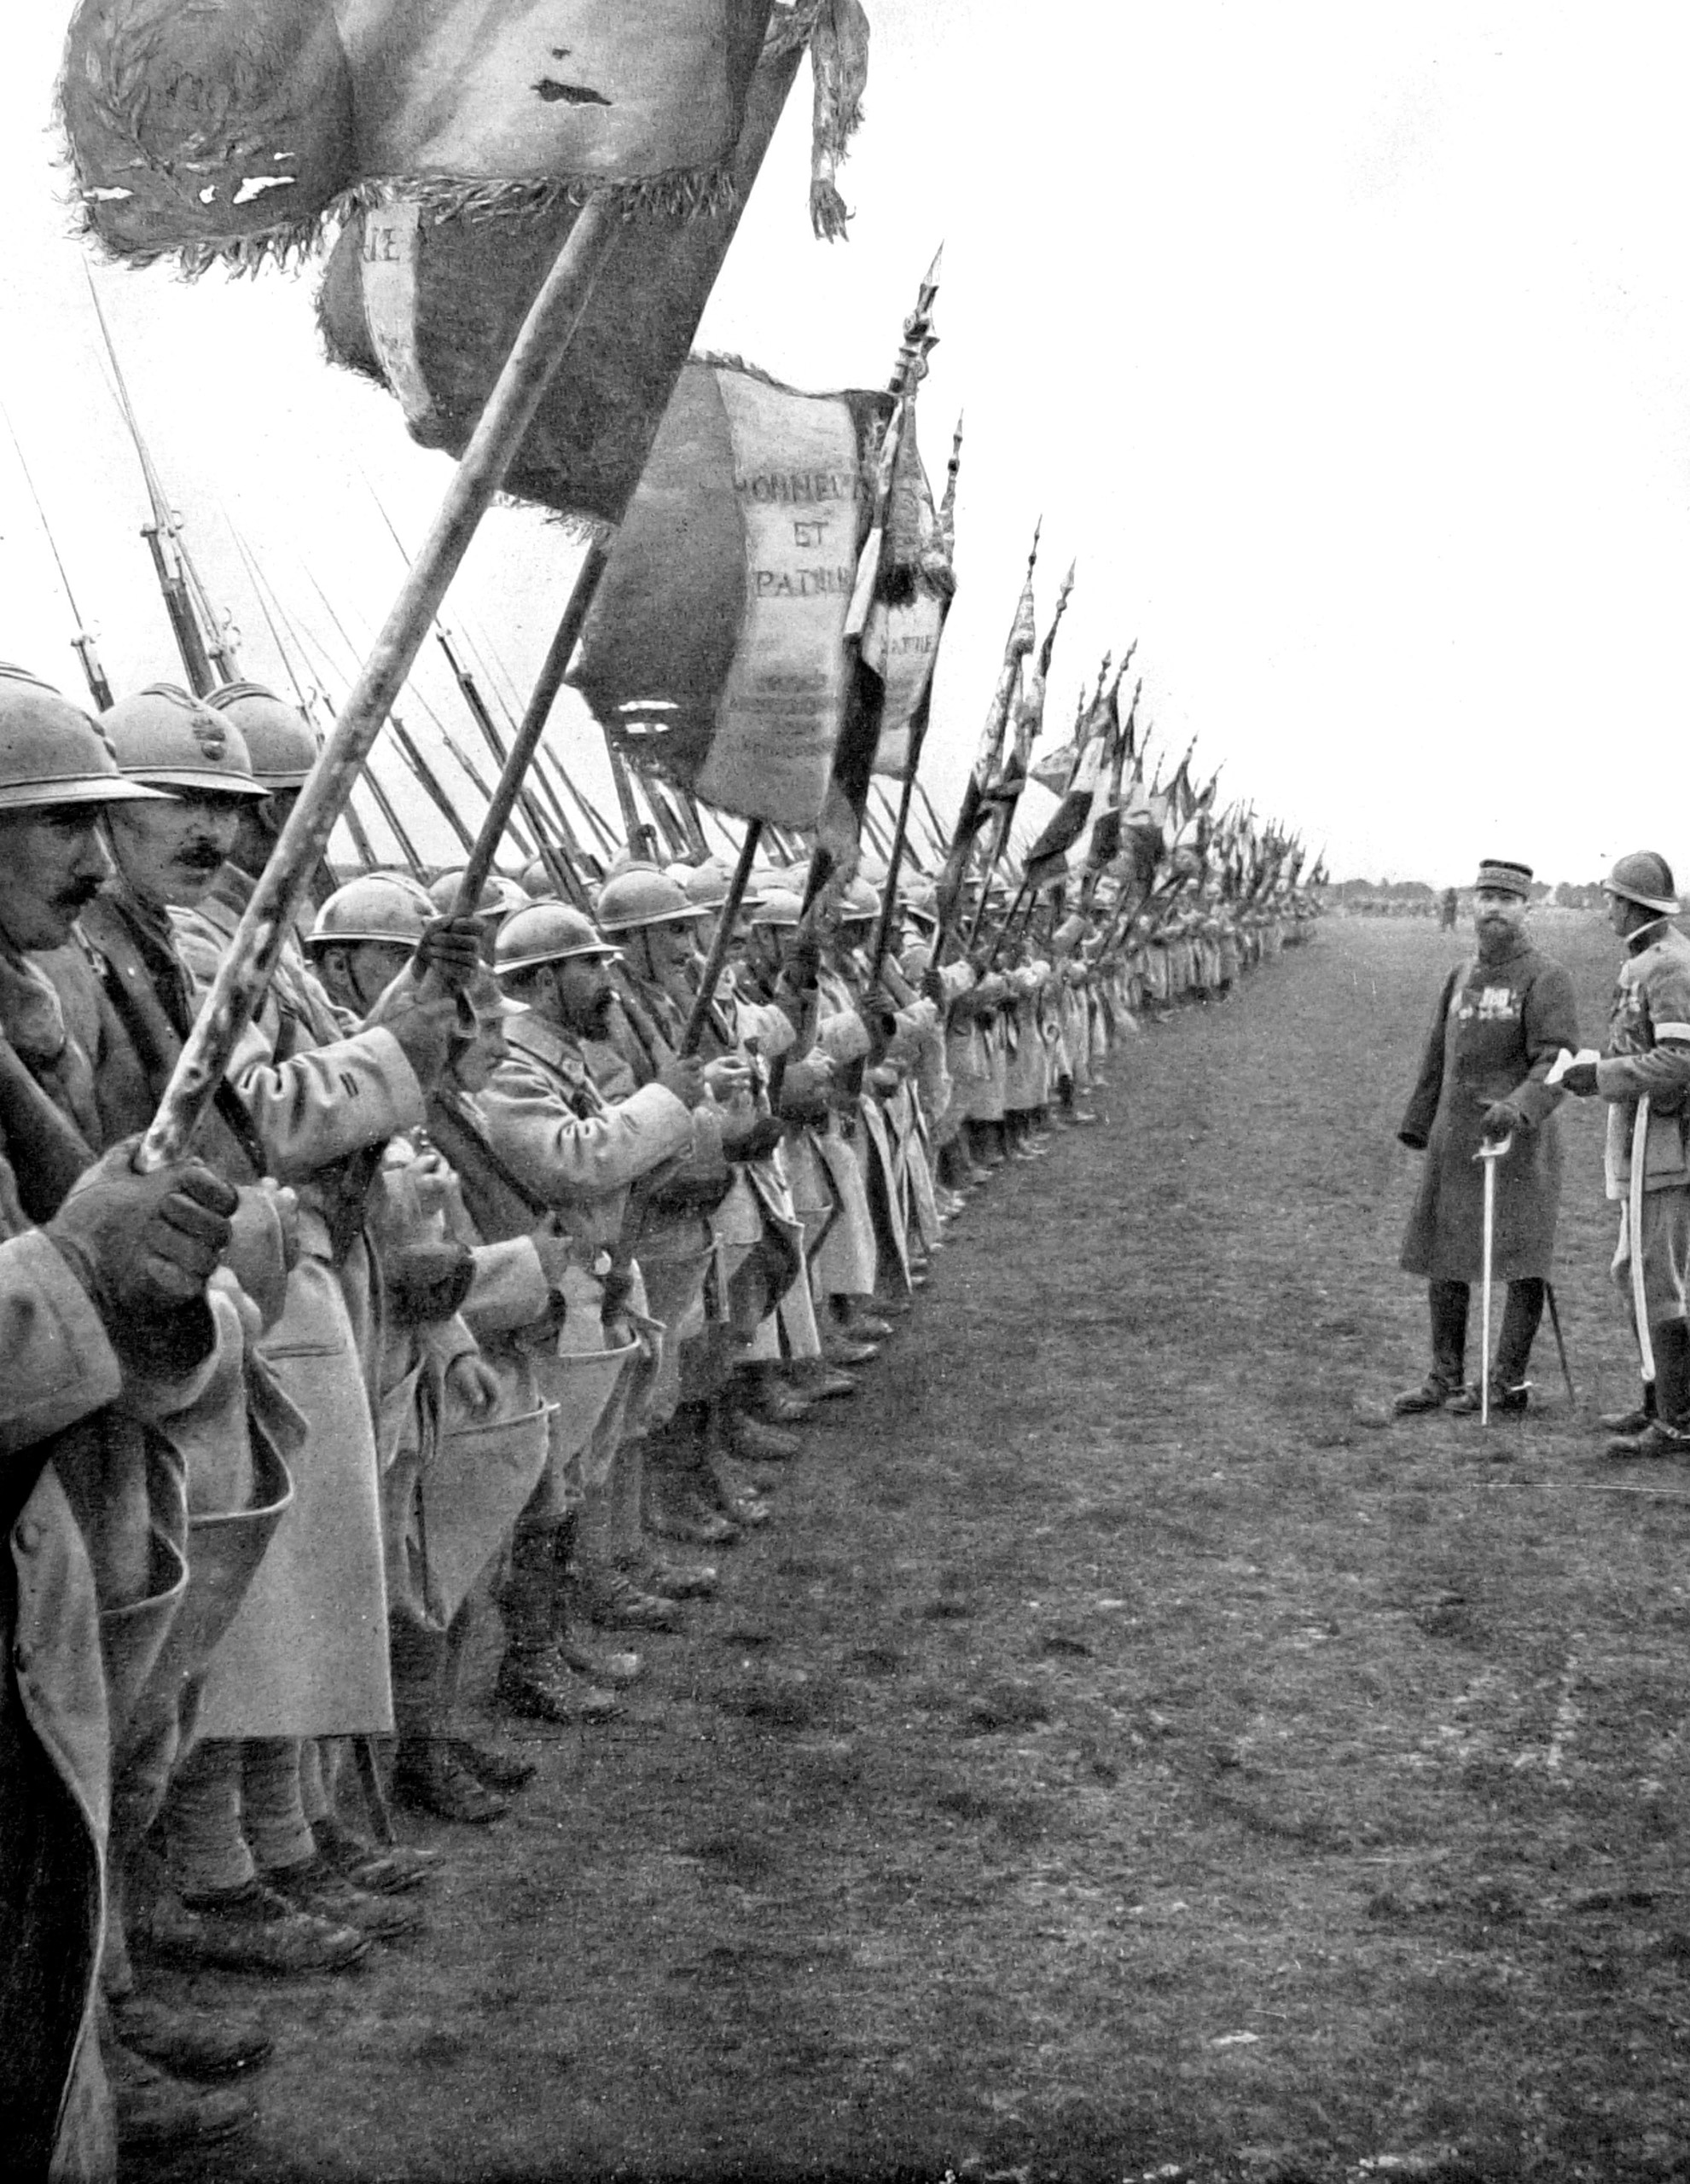 General Gouraud has gathered flags of all regiments of his army to salute a division who won battles in Verdun. 1916.